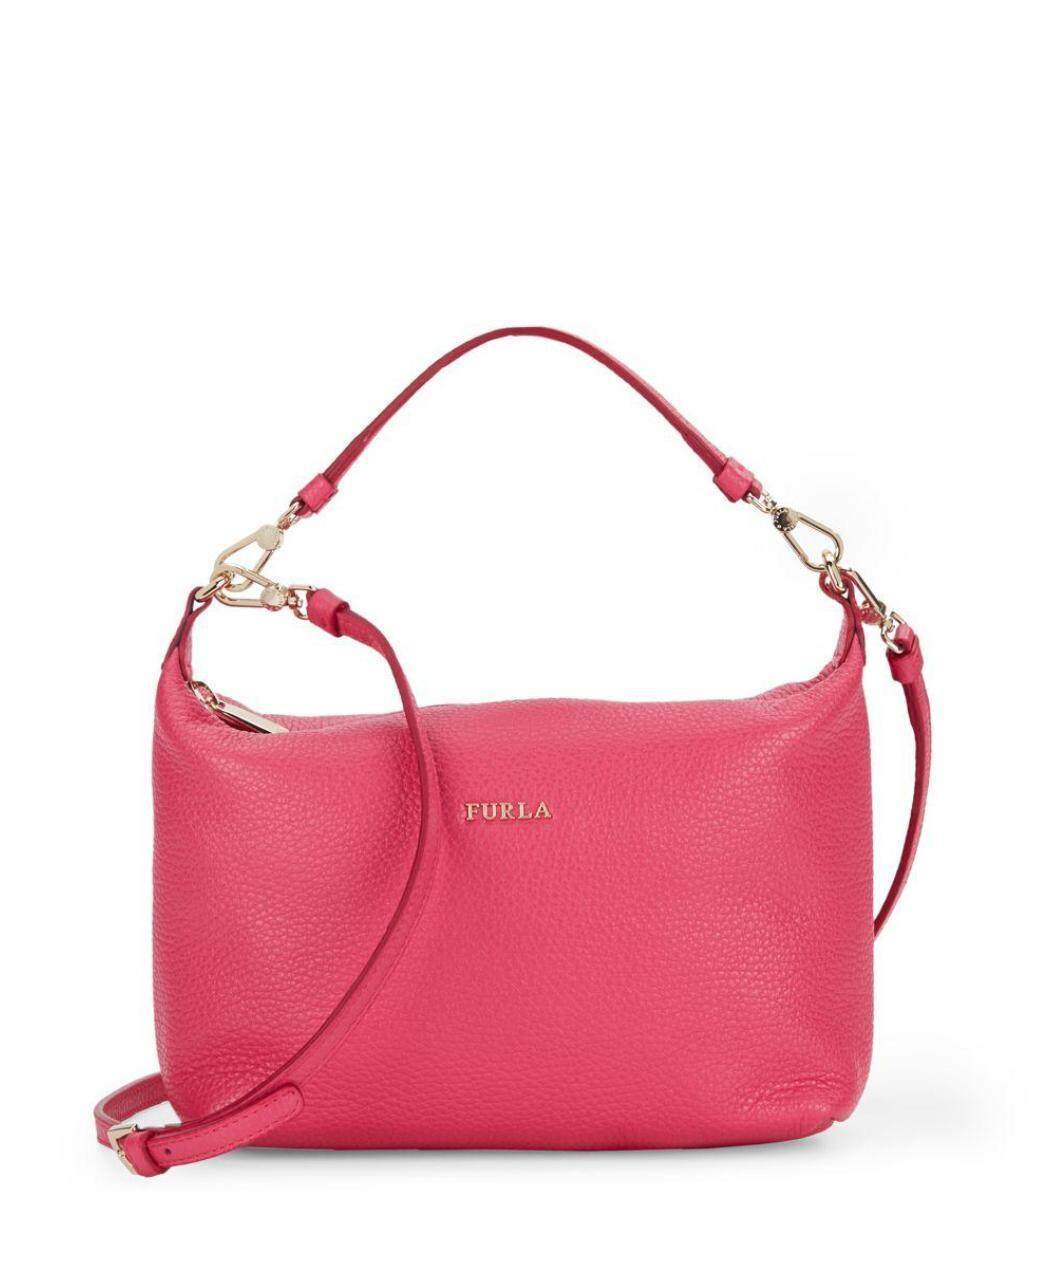 6d7c5ac39 Popular Furla Handbags for the Best Prices in Malaysia